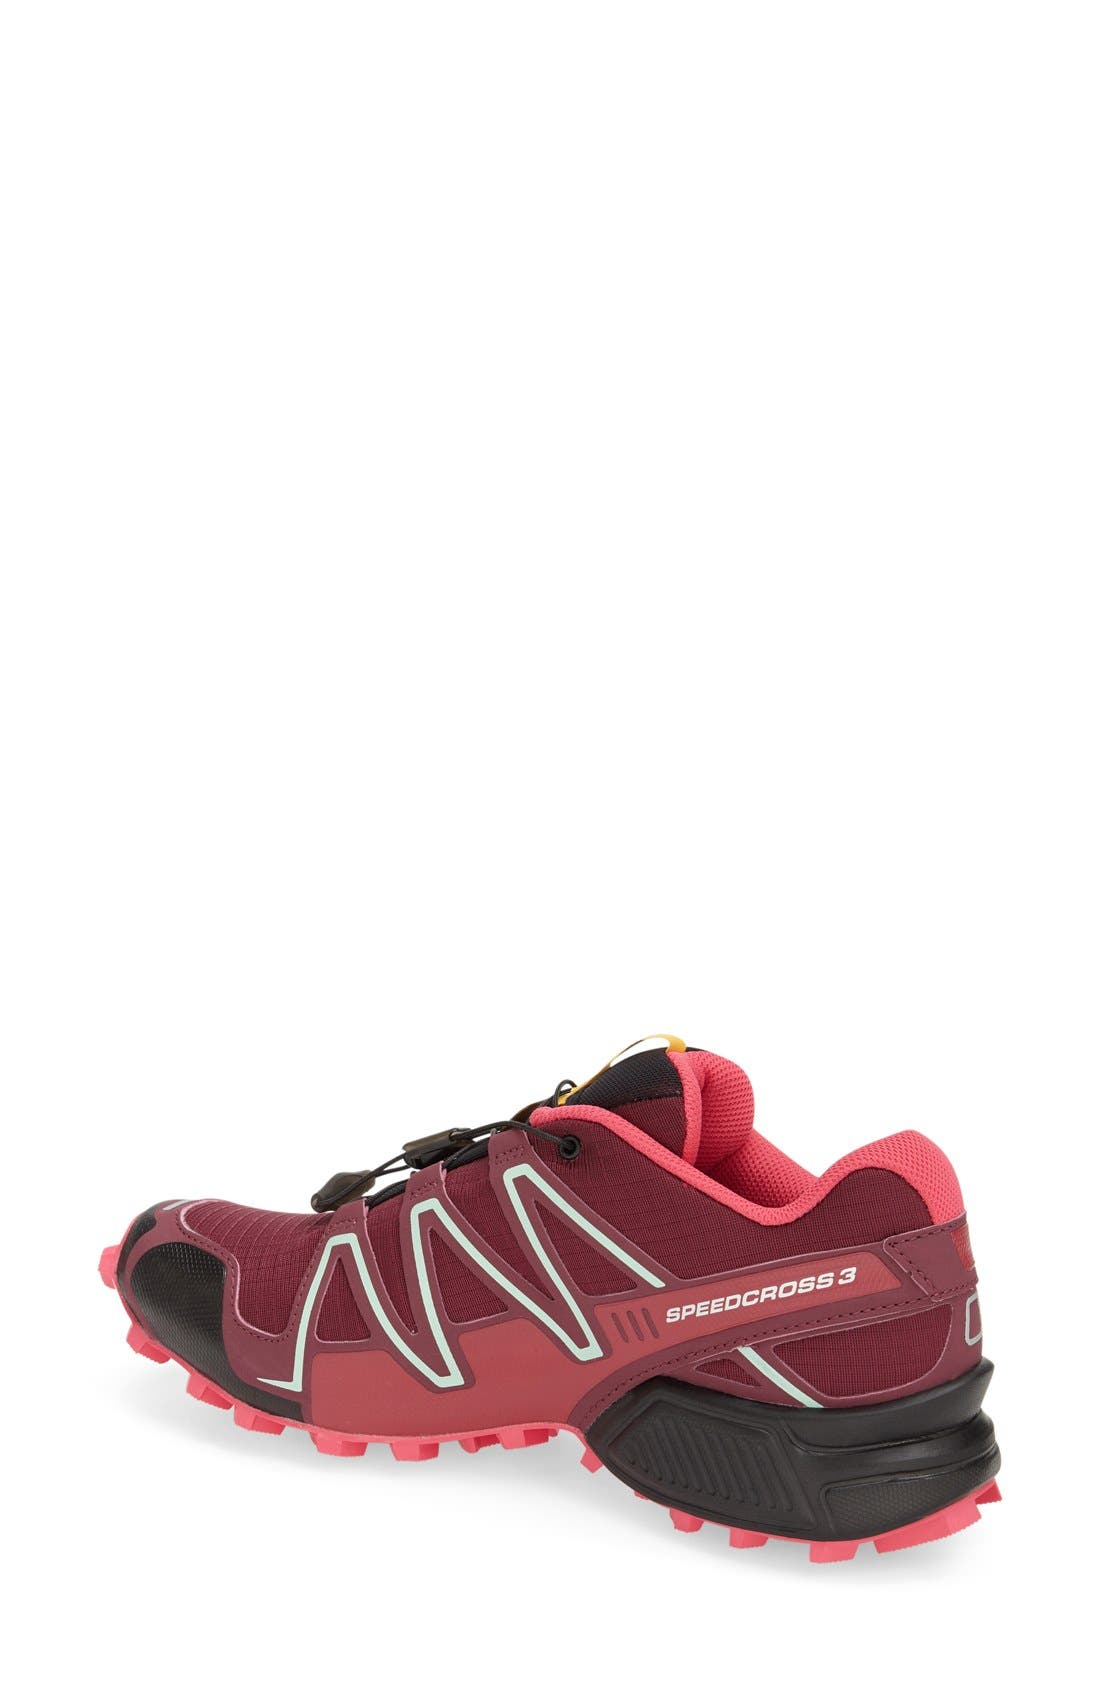 Alternate Image 2  - Salomon 'Speedcross 3' Water Resistant Trail Running Shoe